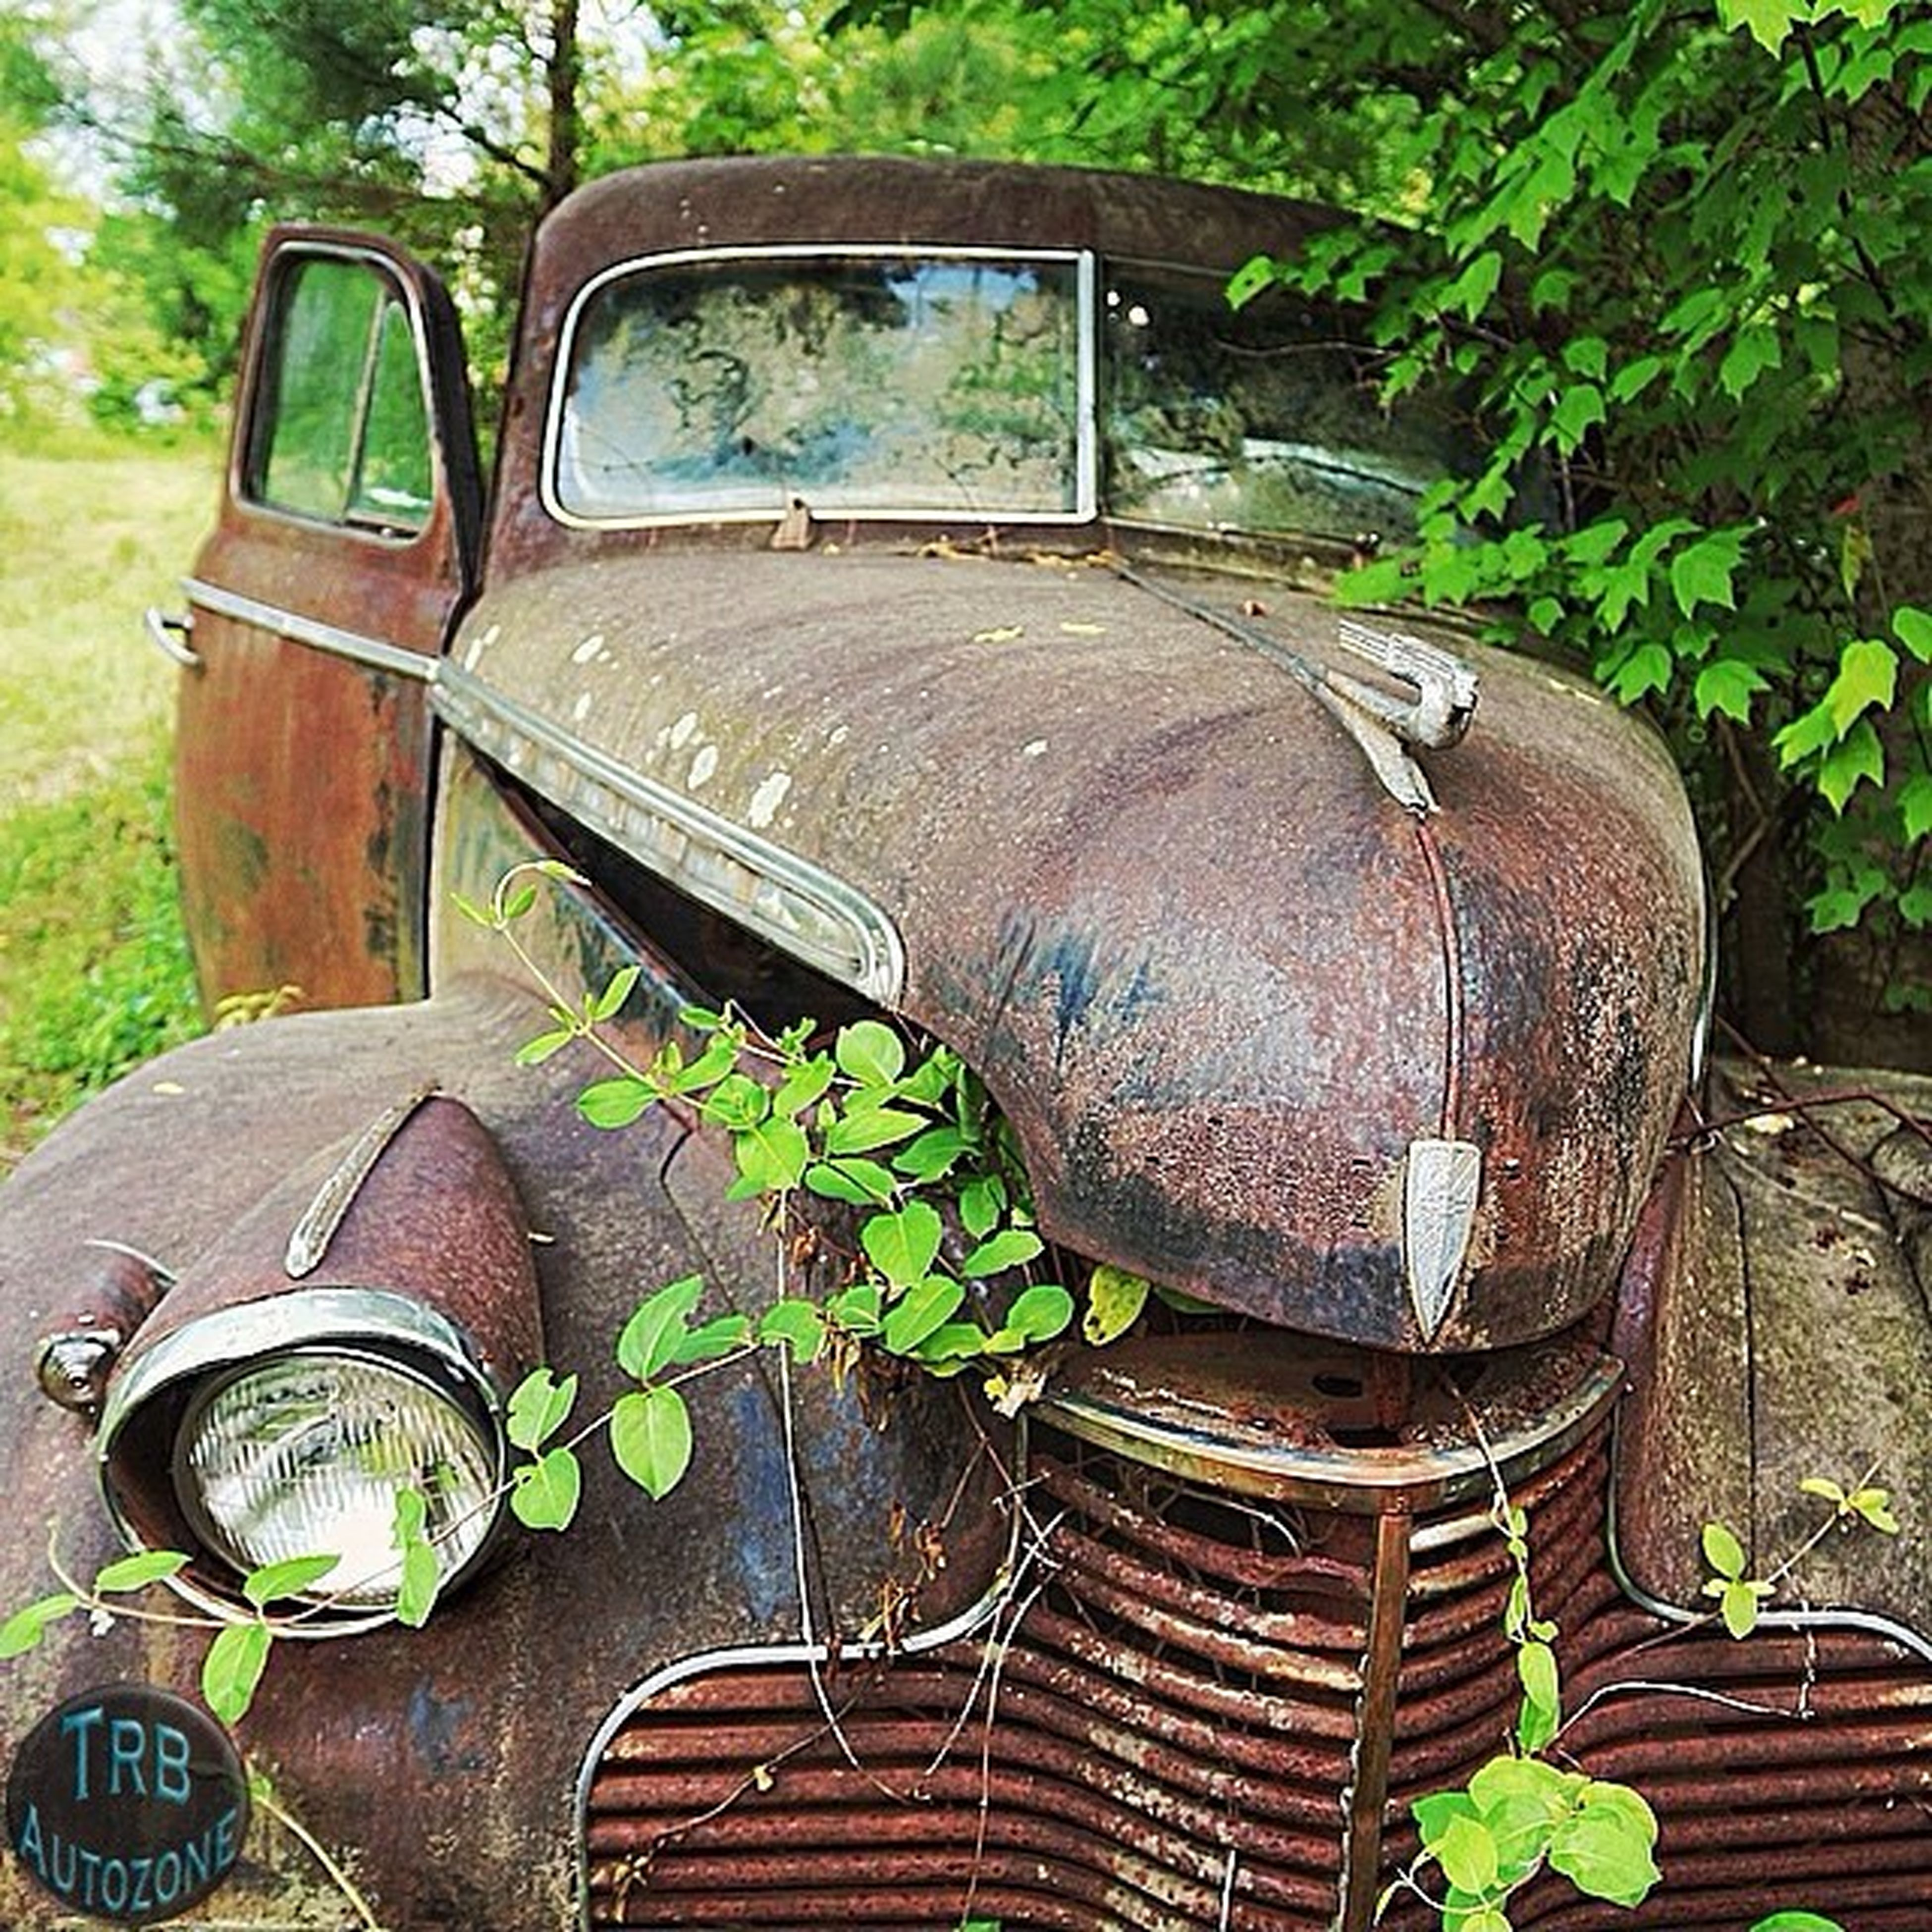 old, abandoned, old-fashioned, land vehicle, obsolete, car, rusty, retro styled, mode of transport, transportation, run-down, day, plant, damaged, tree, outdoors, sunlight, grass, no people, metal